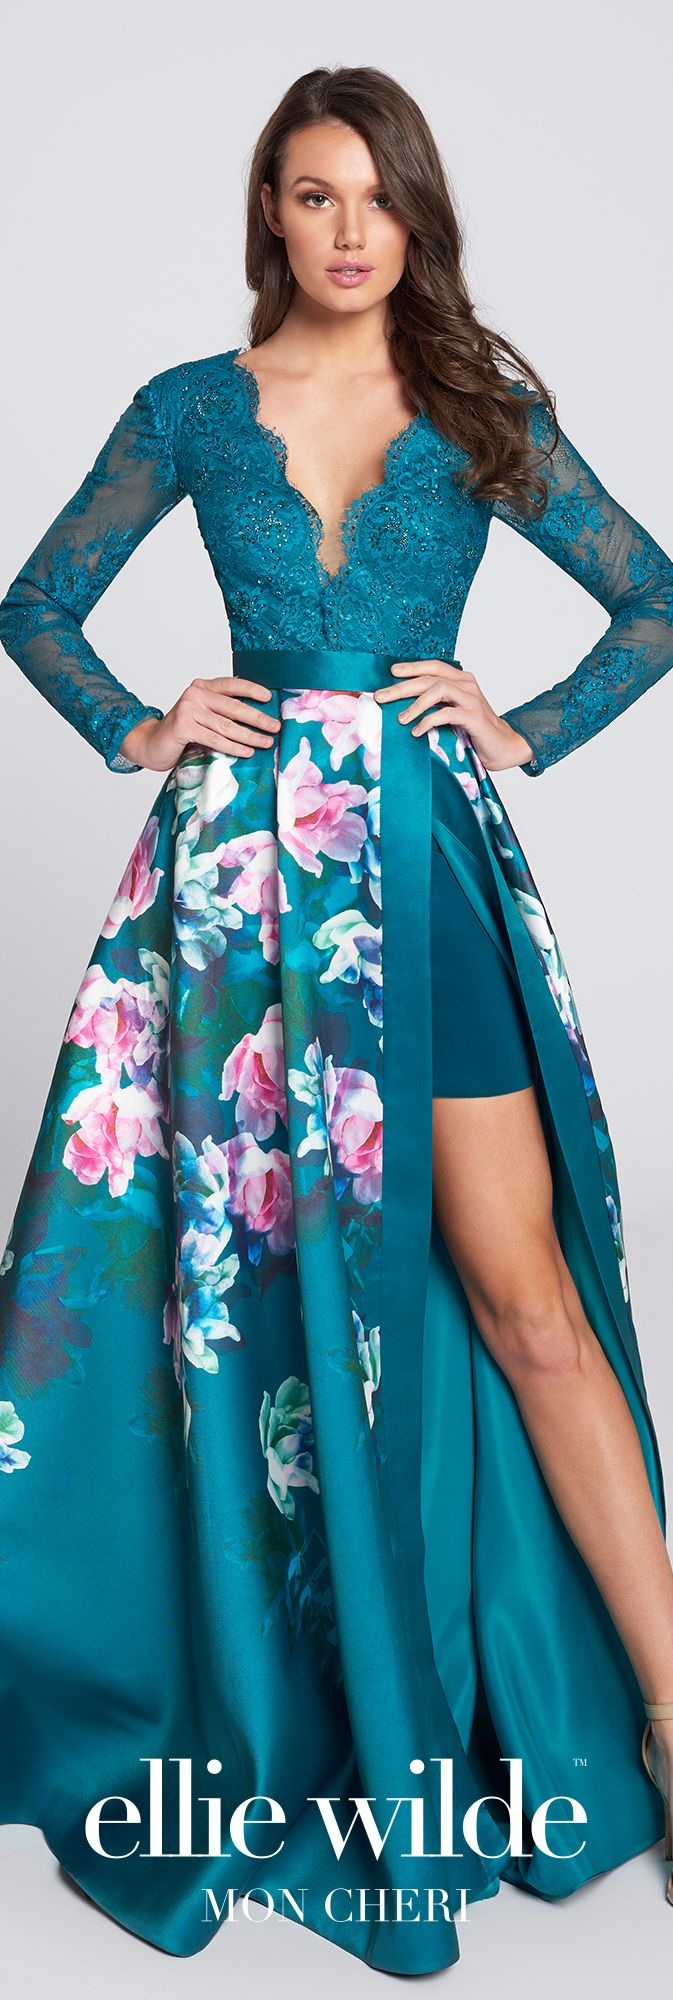 Long sleeve lace bodice floral print prom dress. A-line gown, plunging V-neckline, large keyhole back, Mikado overskirt with side slit, short underskirt.